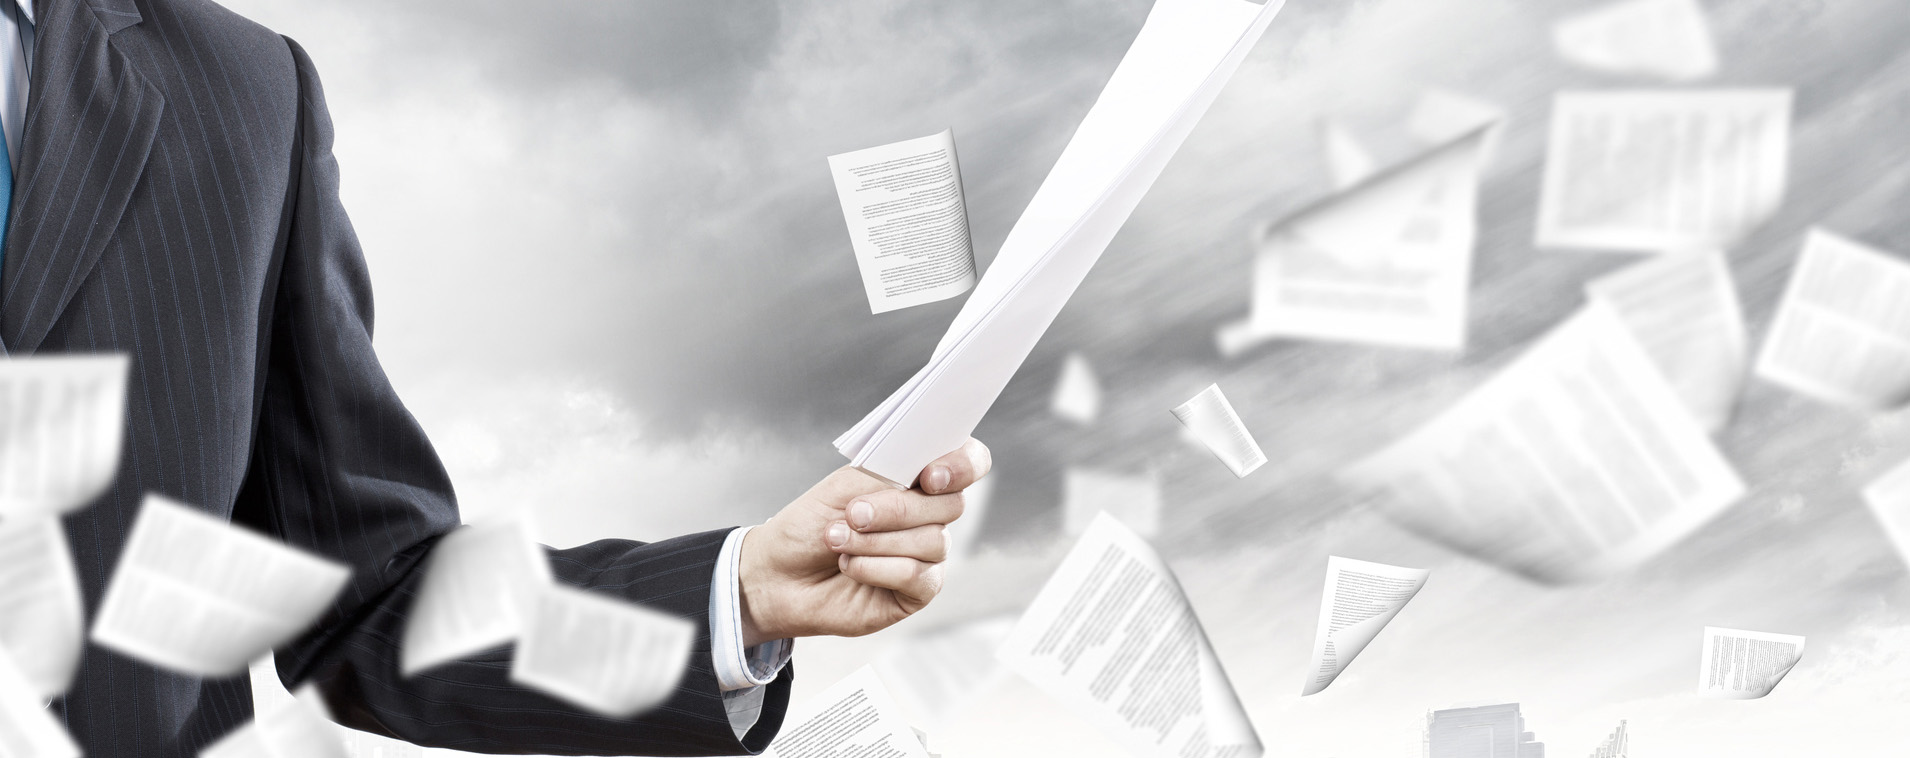 The Document Scanning Process